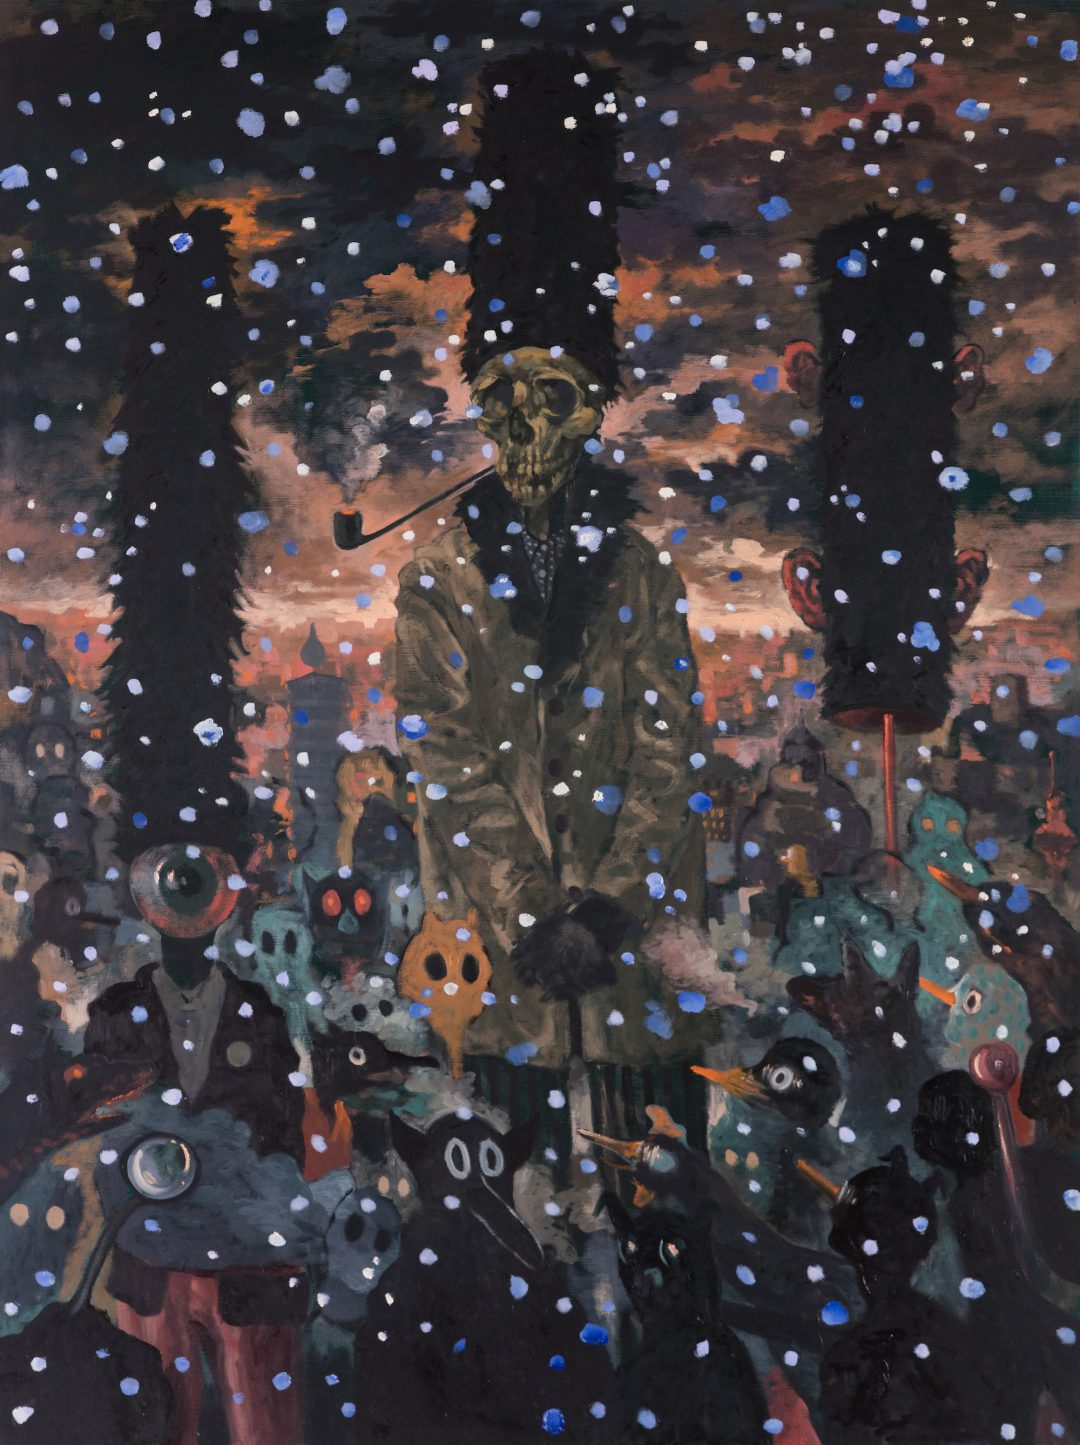 Michael Vale, Snow 2016 oil on linen 122 x 92 cm Winner of the 2017 Bayside Acquisitive Art Prize